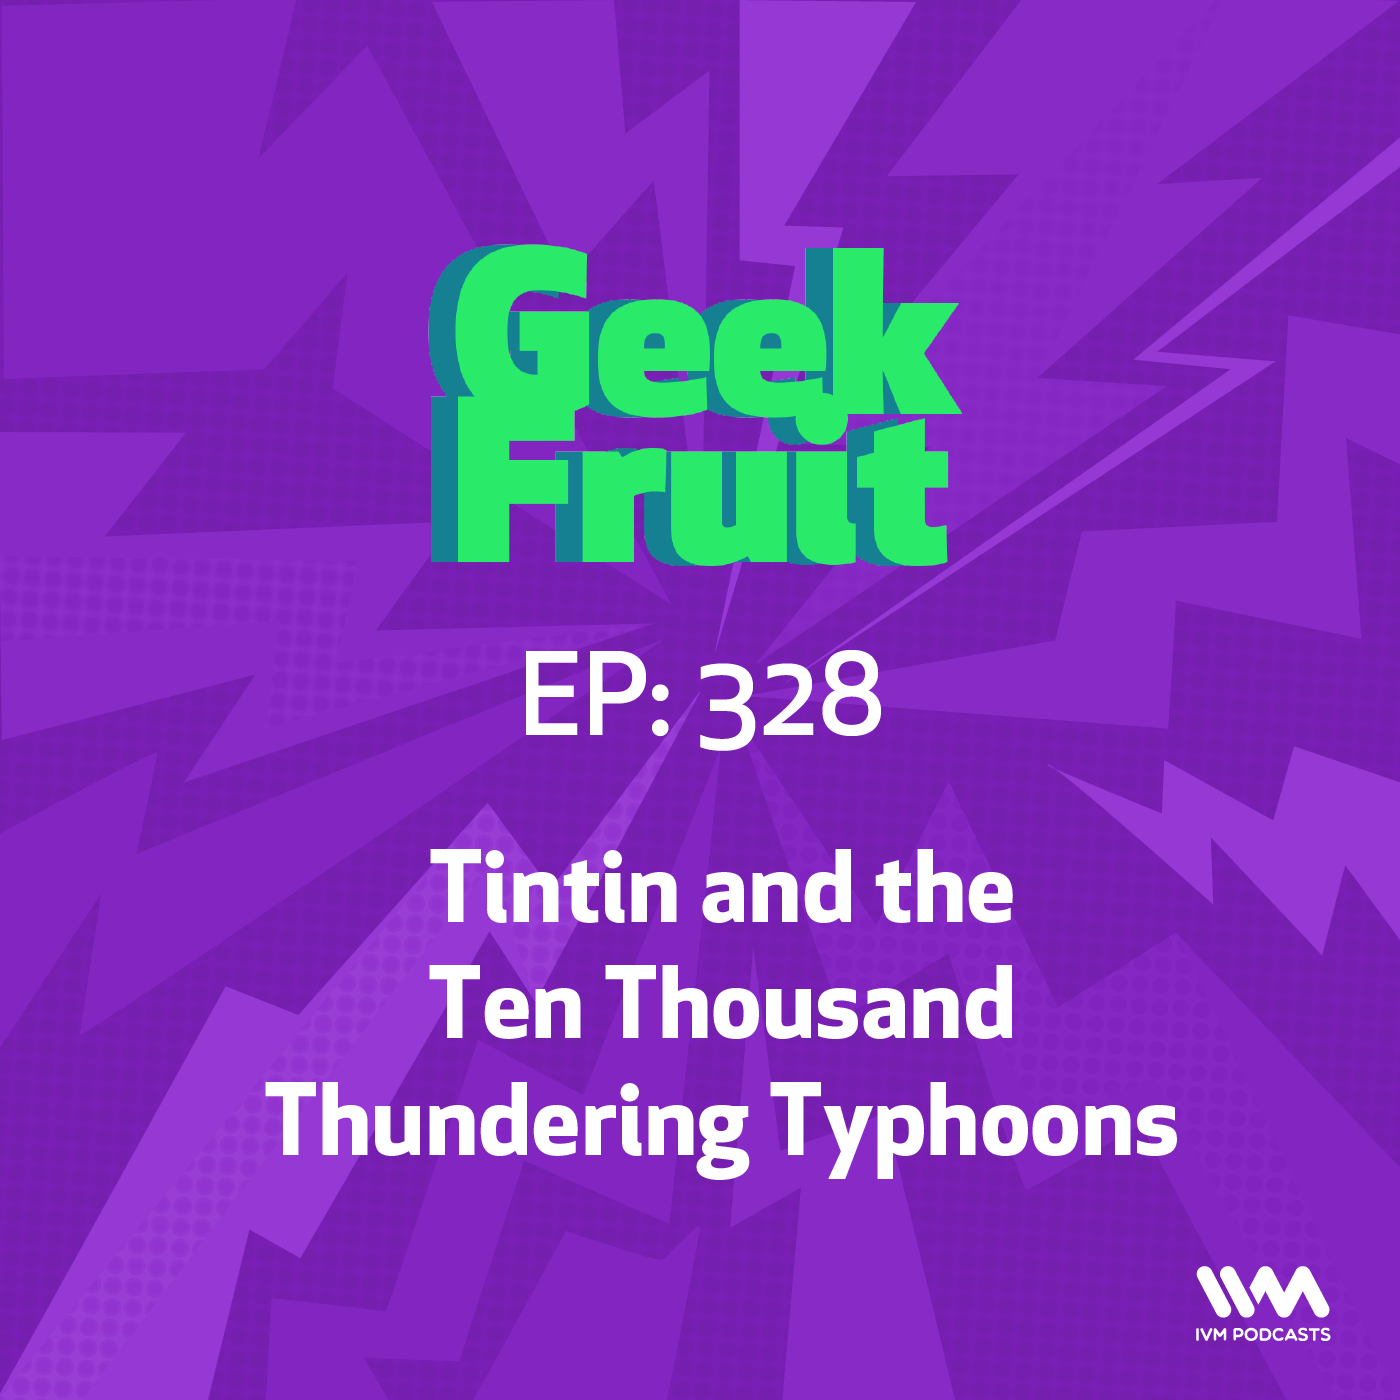 Ep. 328: Tintin and the Ten Thousand Thundering Typhoons